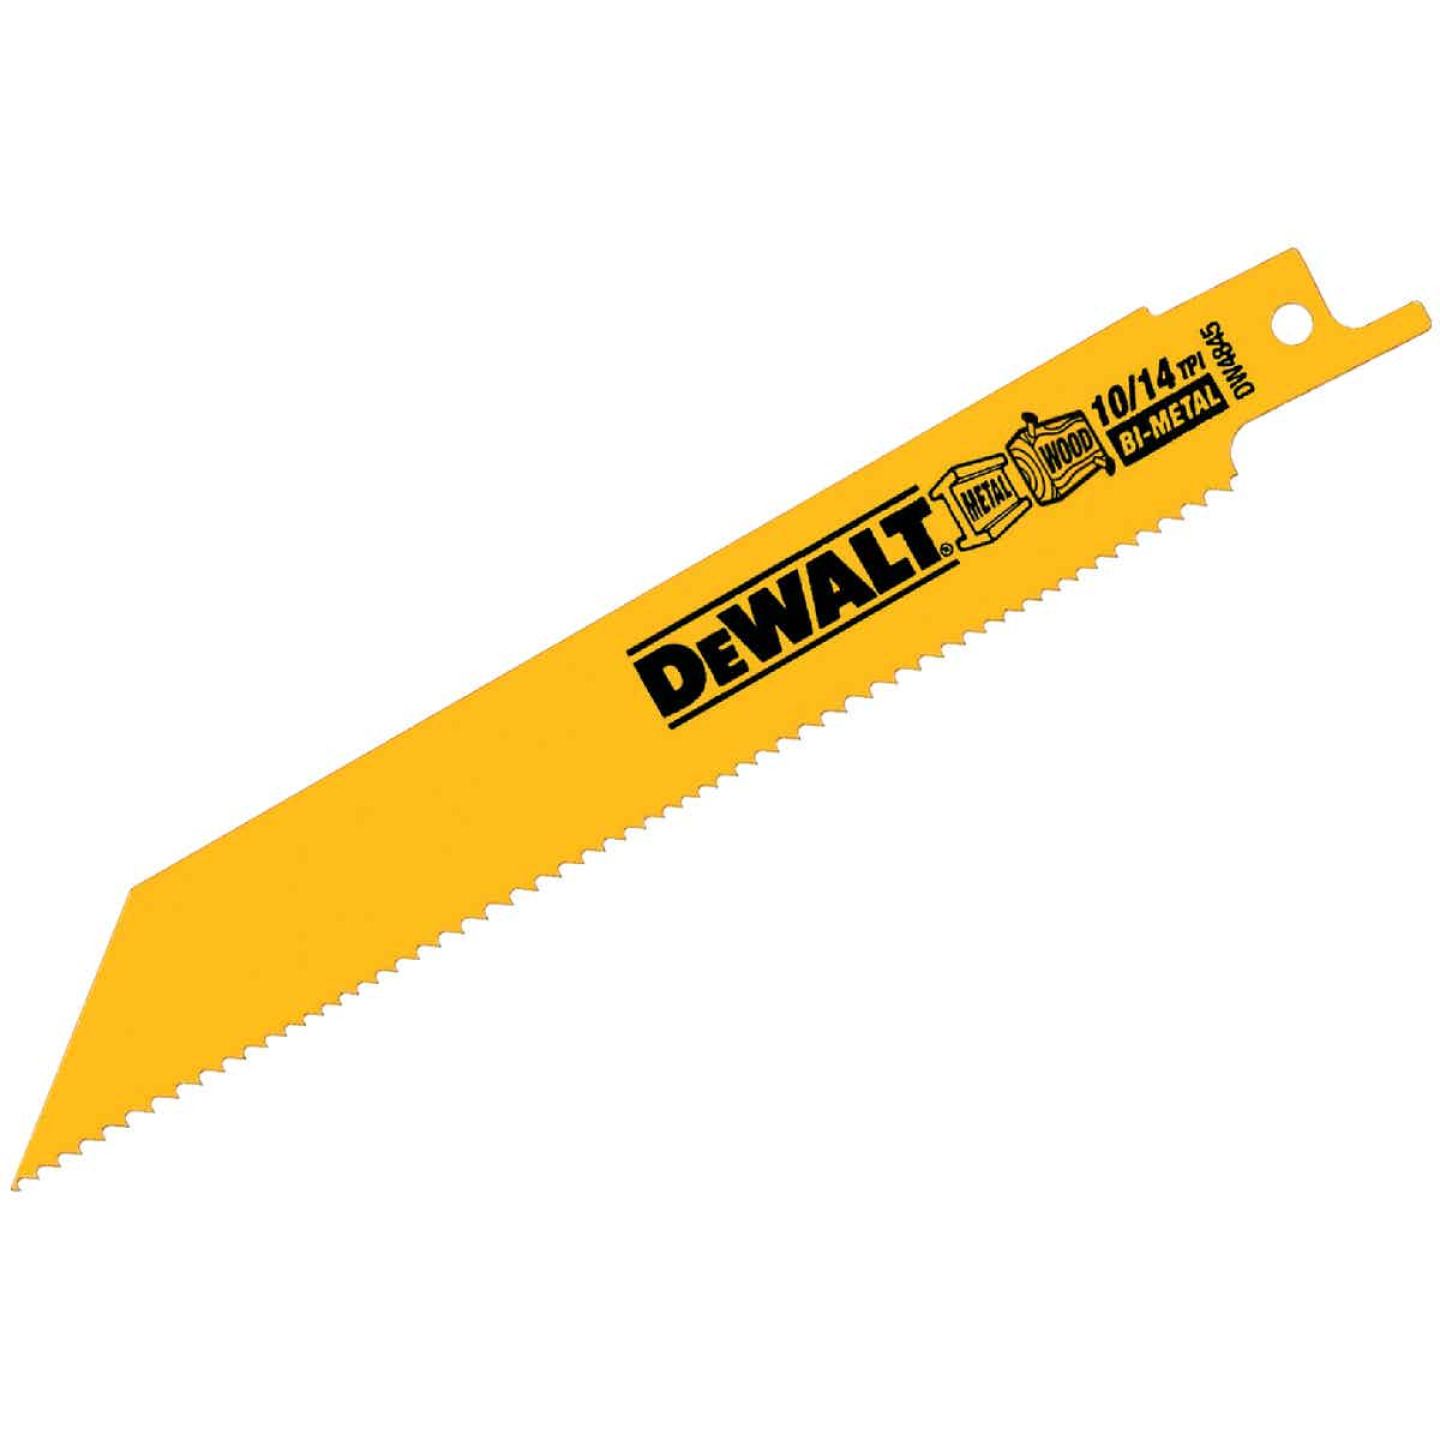 DeWalt 6 In. 10/14 TPI Wood/Metal Reciprocating Saw Blade (2-Pack) Image 1